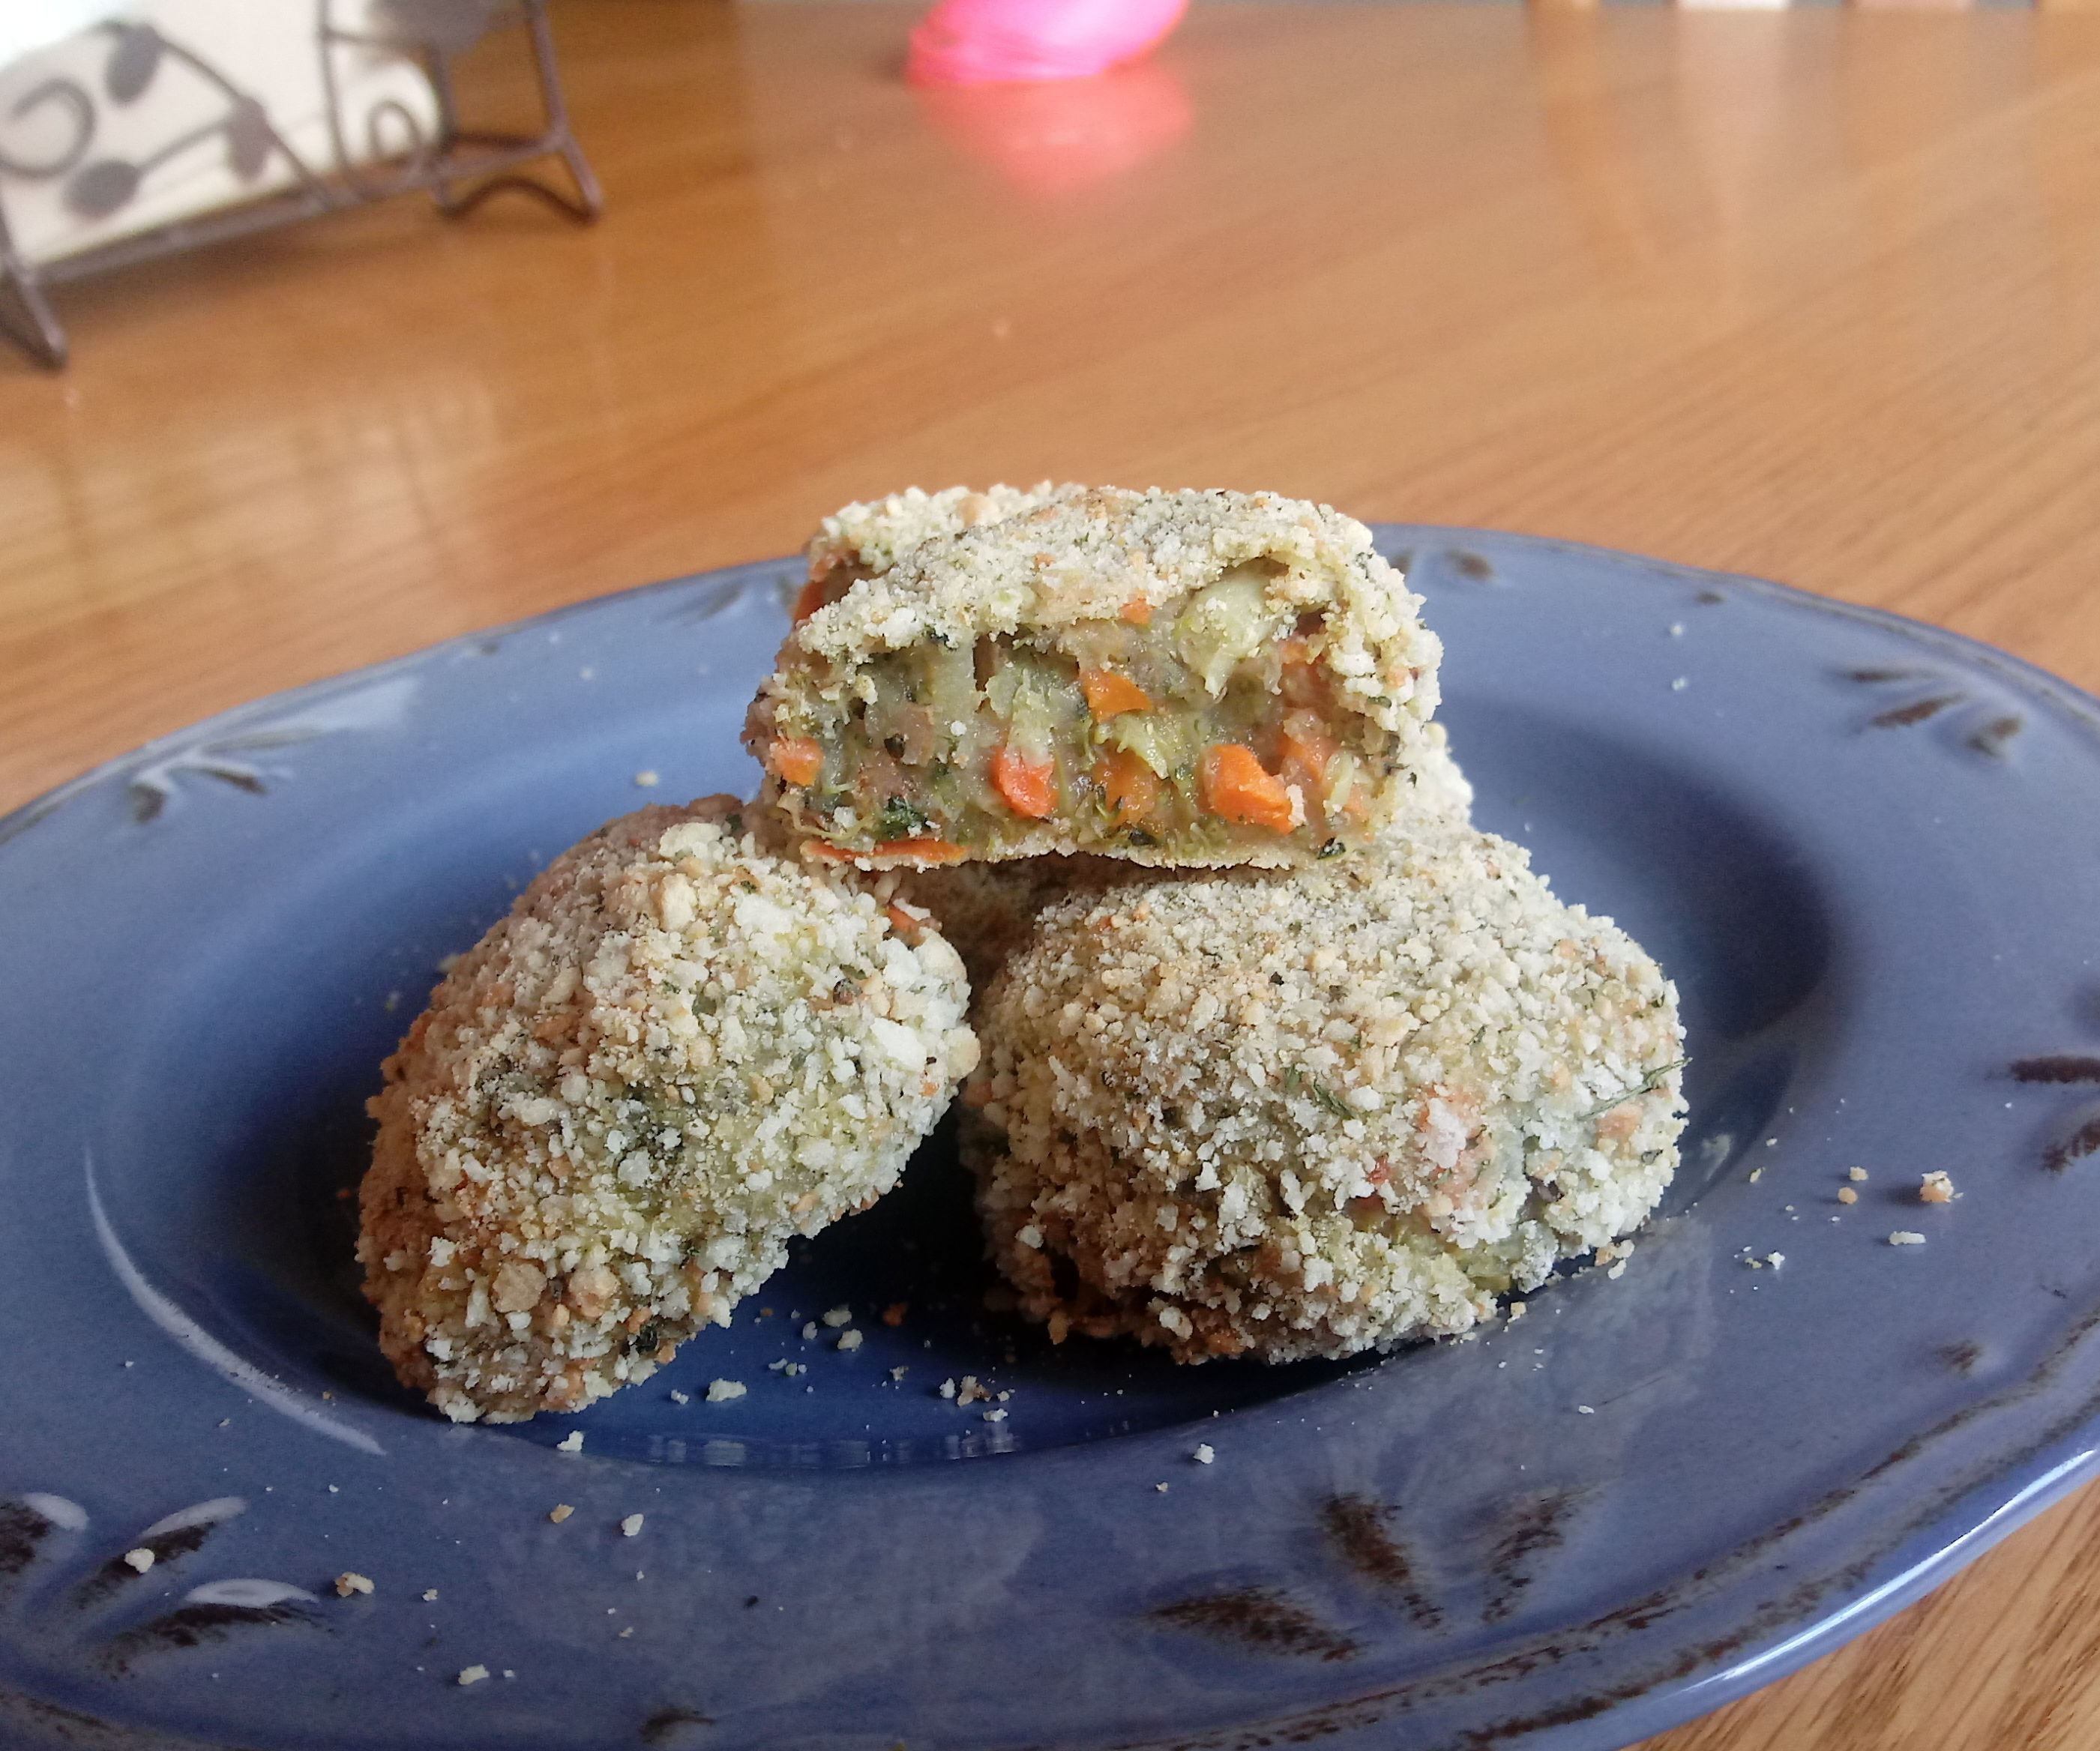 Homemade Vegetable Nuggets (AKA How to Get Your Kid to Eat Their Vegetables)